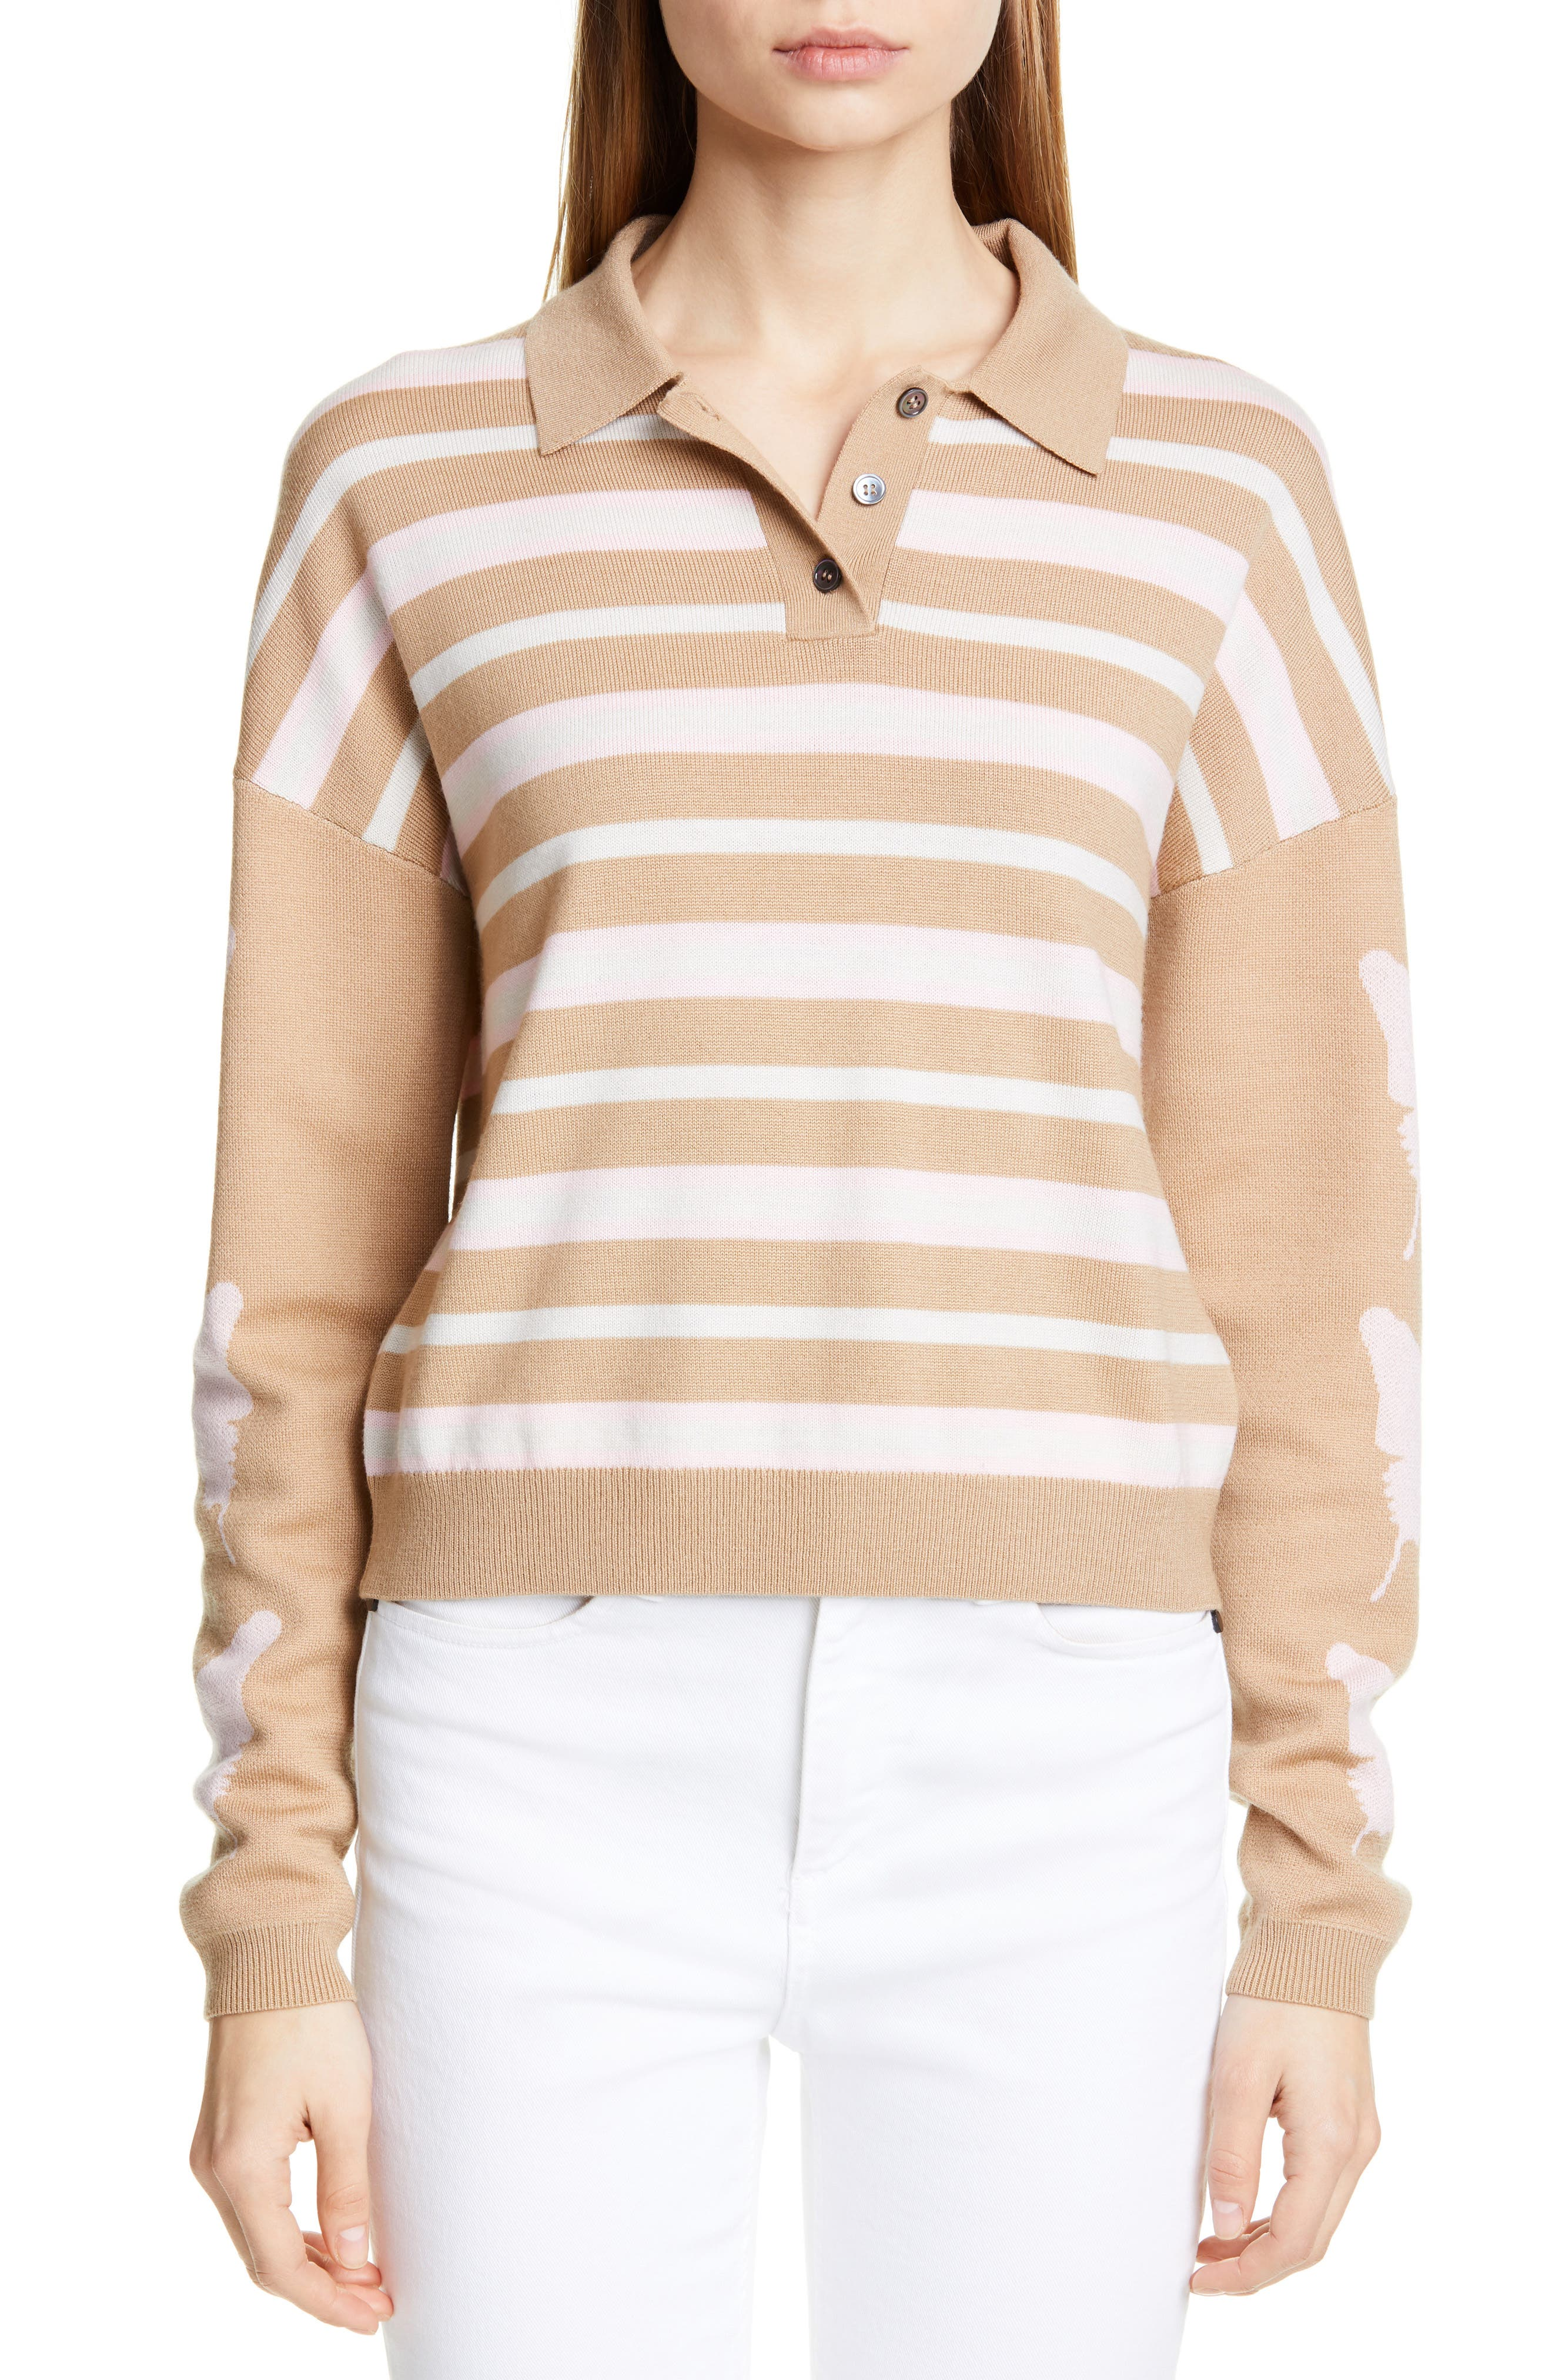 Sandy Liang Boothbay Merino Wool Polo Sweater, Beige (Nordstrom Exclusive)